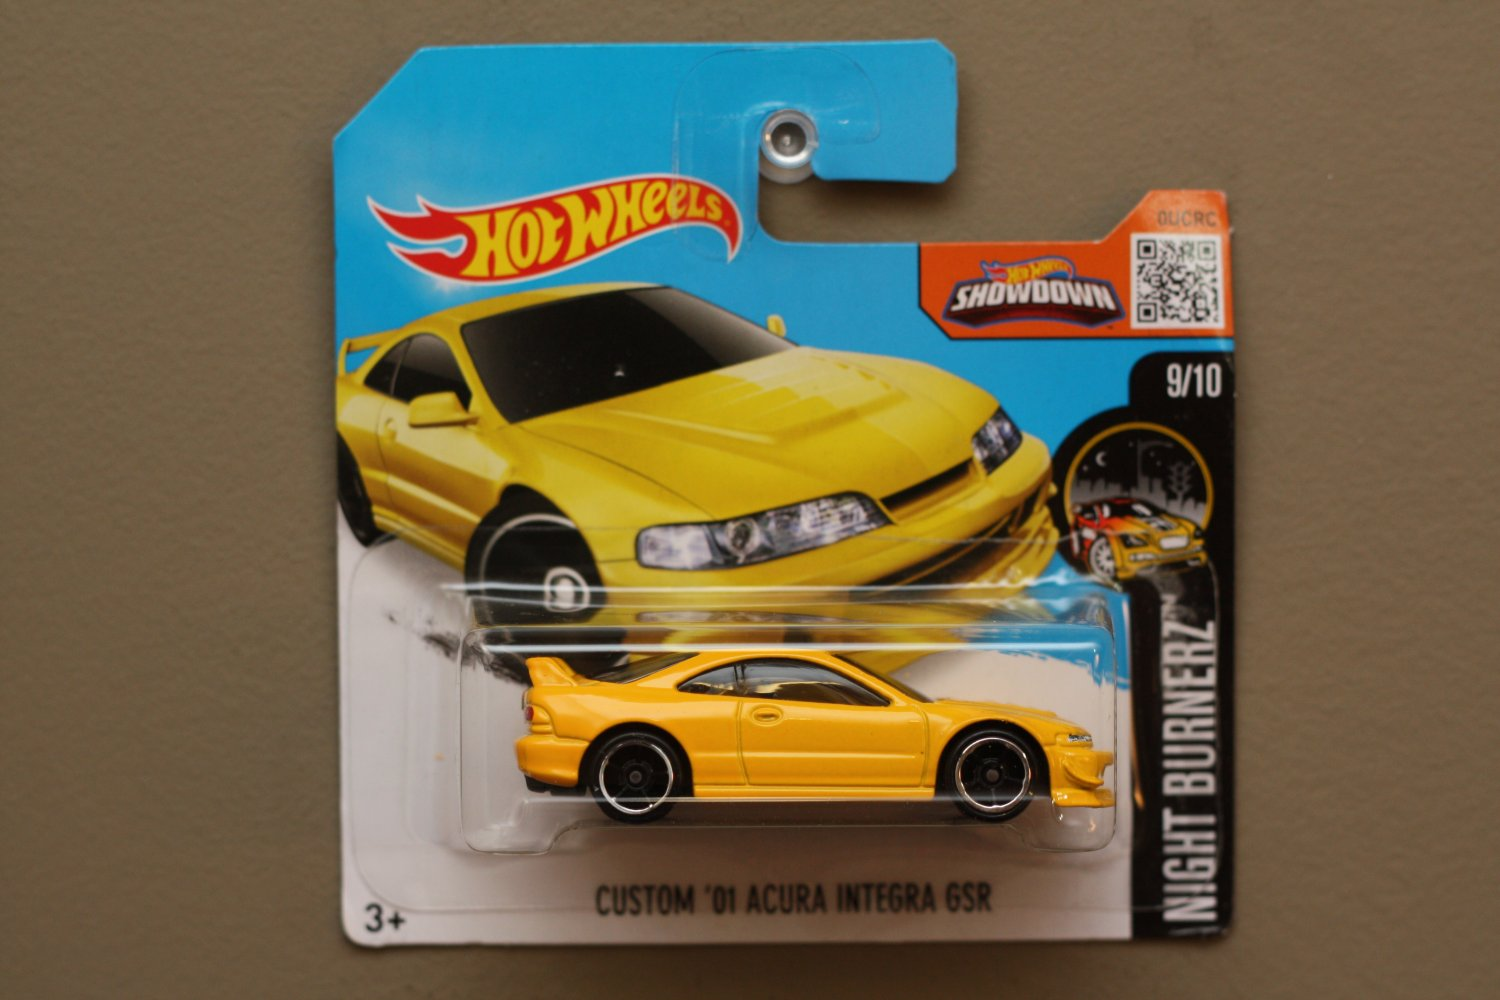 Hot Wheels 2016 Nightburnerz Custom '01 Acura Integra GSR (yellow) (SEE CONDITION)